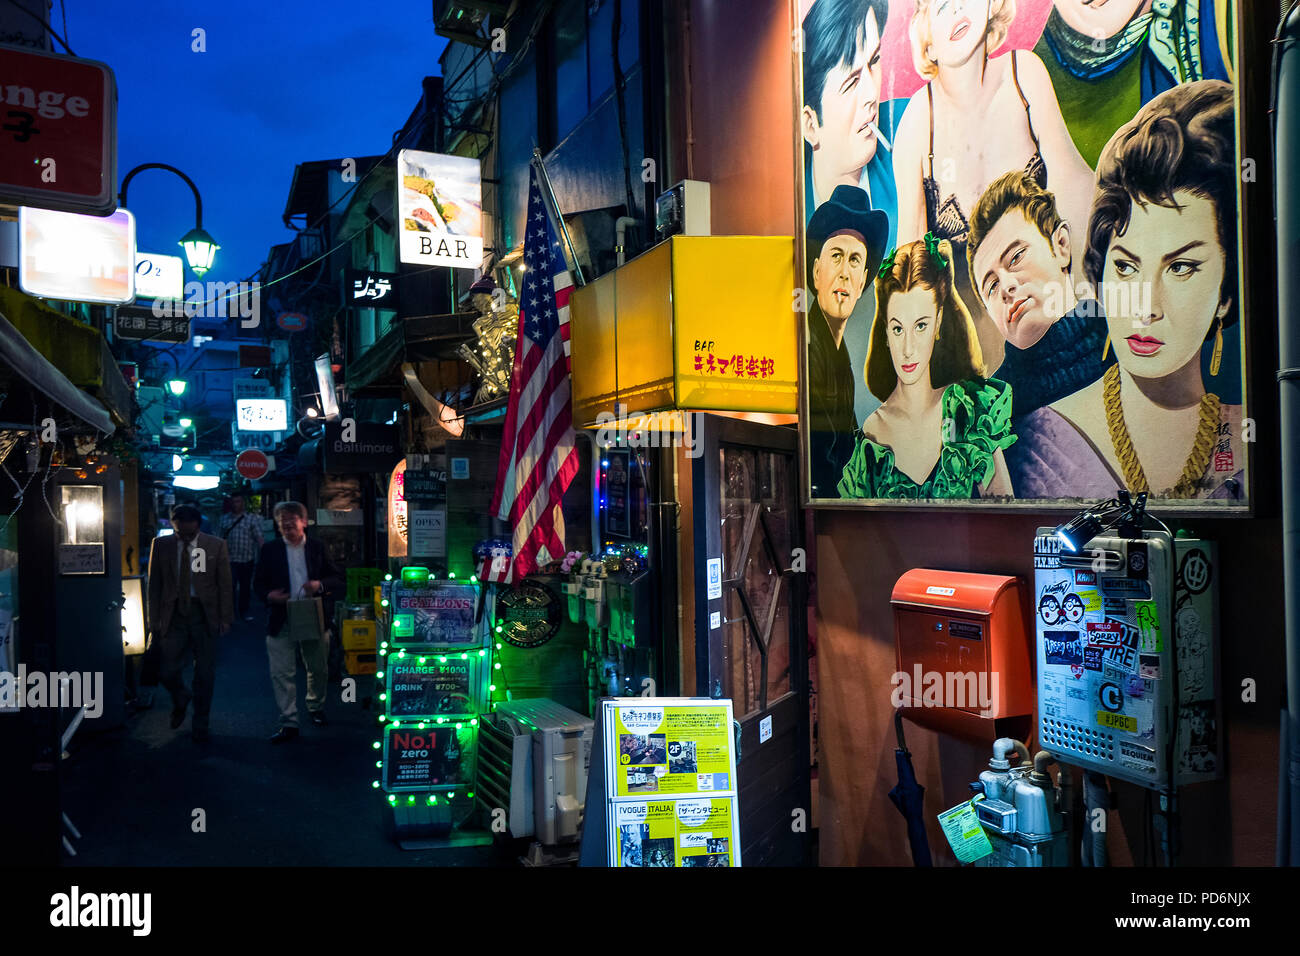 Japan, Honshu island, Kanto, Tokyo, the Golden Gai district. - Stock Image